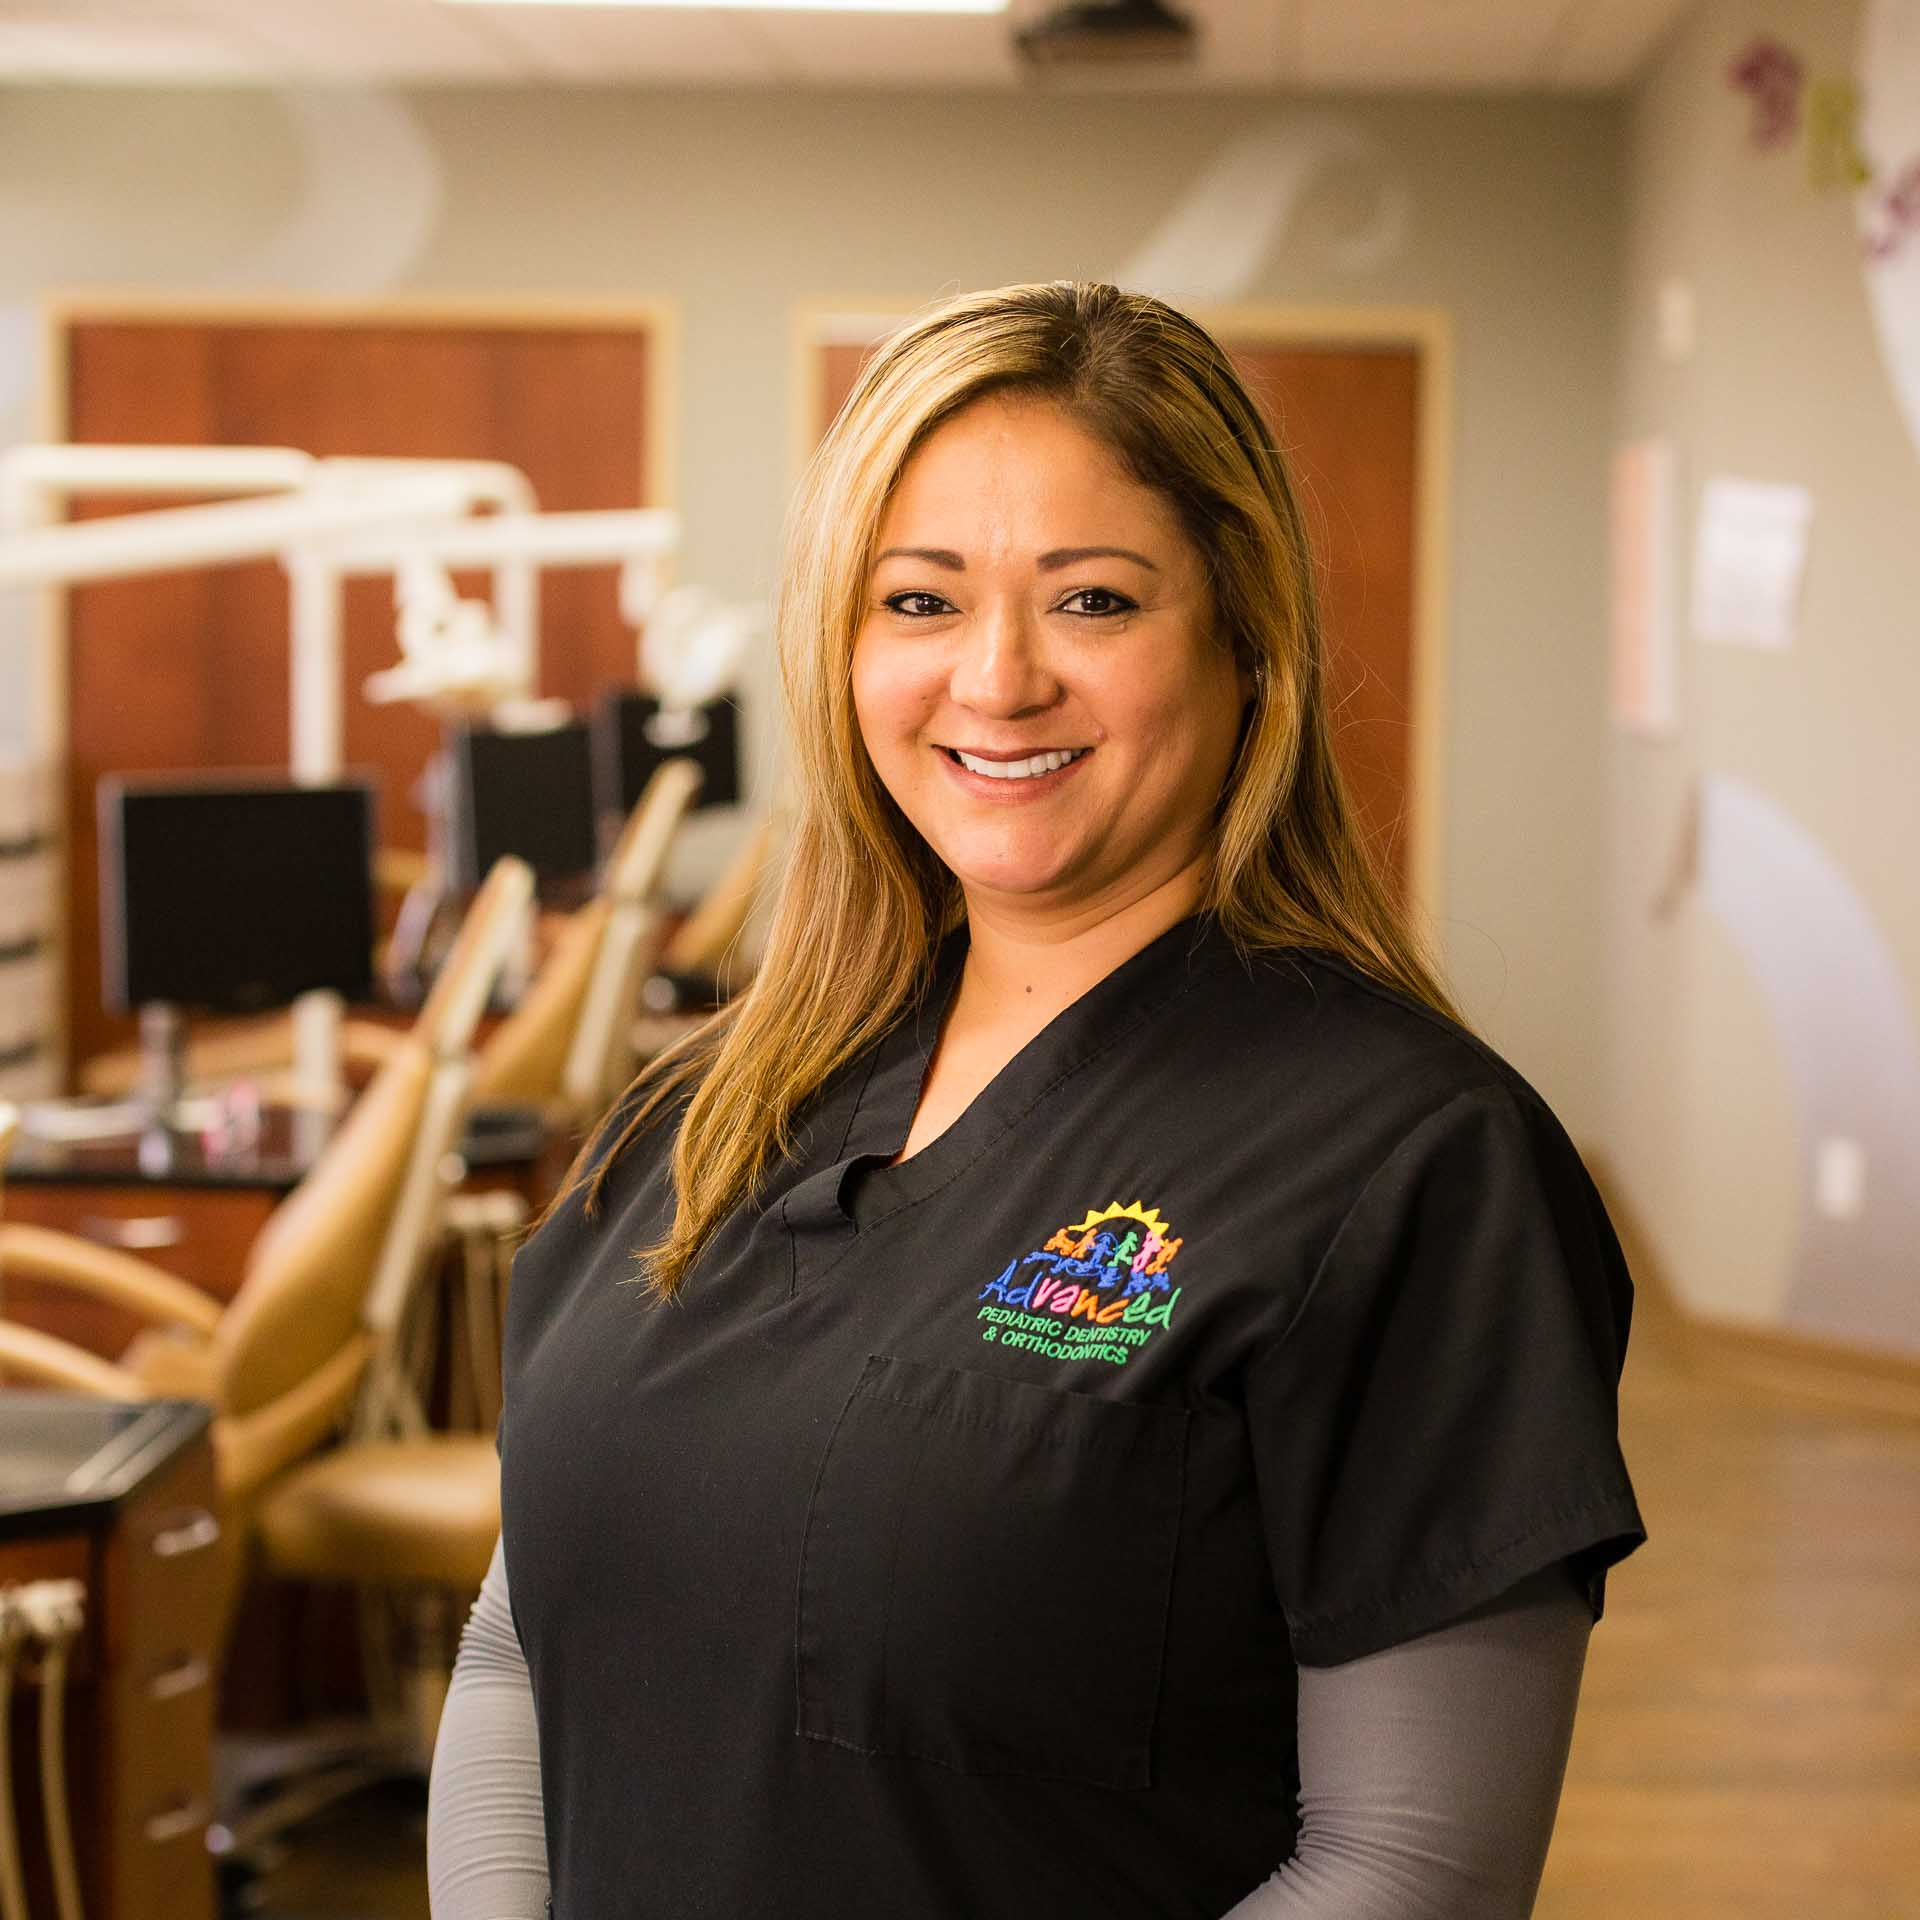 Nelida - Lead Assistant (Pediatrics & Orthodontics) - Hi, my name is Neli.  I was raised in the Tri-Cities.  I am a mother of three. I love to be a positive role model for my children.  I started working as a dental assistant in 2005. I joined Advanced Pediatric Dentistry and Orthodontics in May of 2011.  Working with children keeps me young at heart and I find my job very rewarding. When I am not in the office, I love being outdoors and spending time with my family.